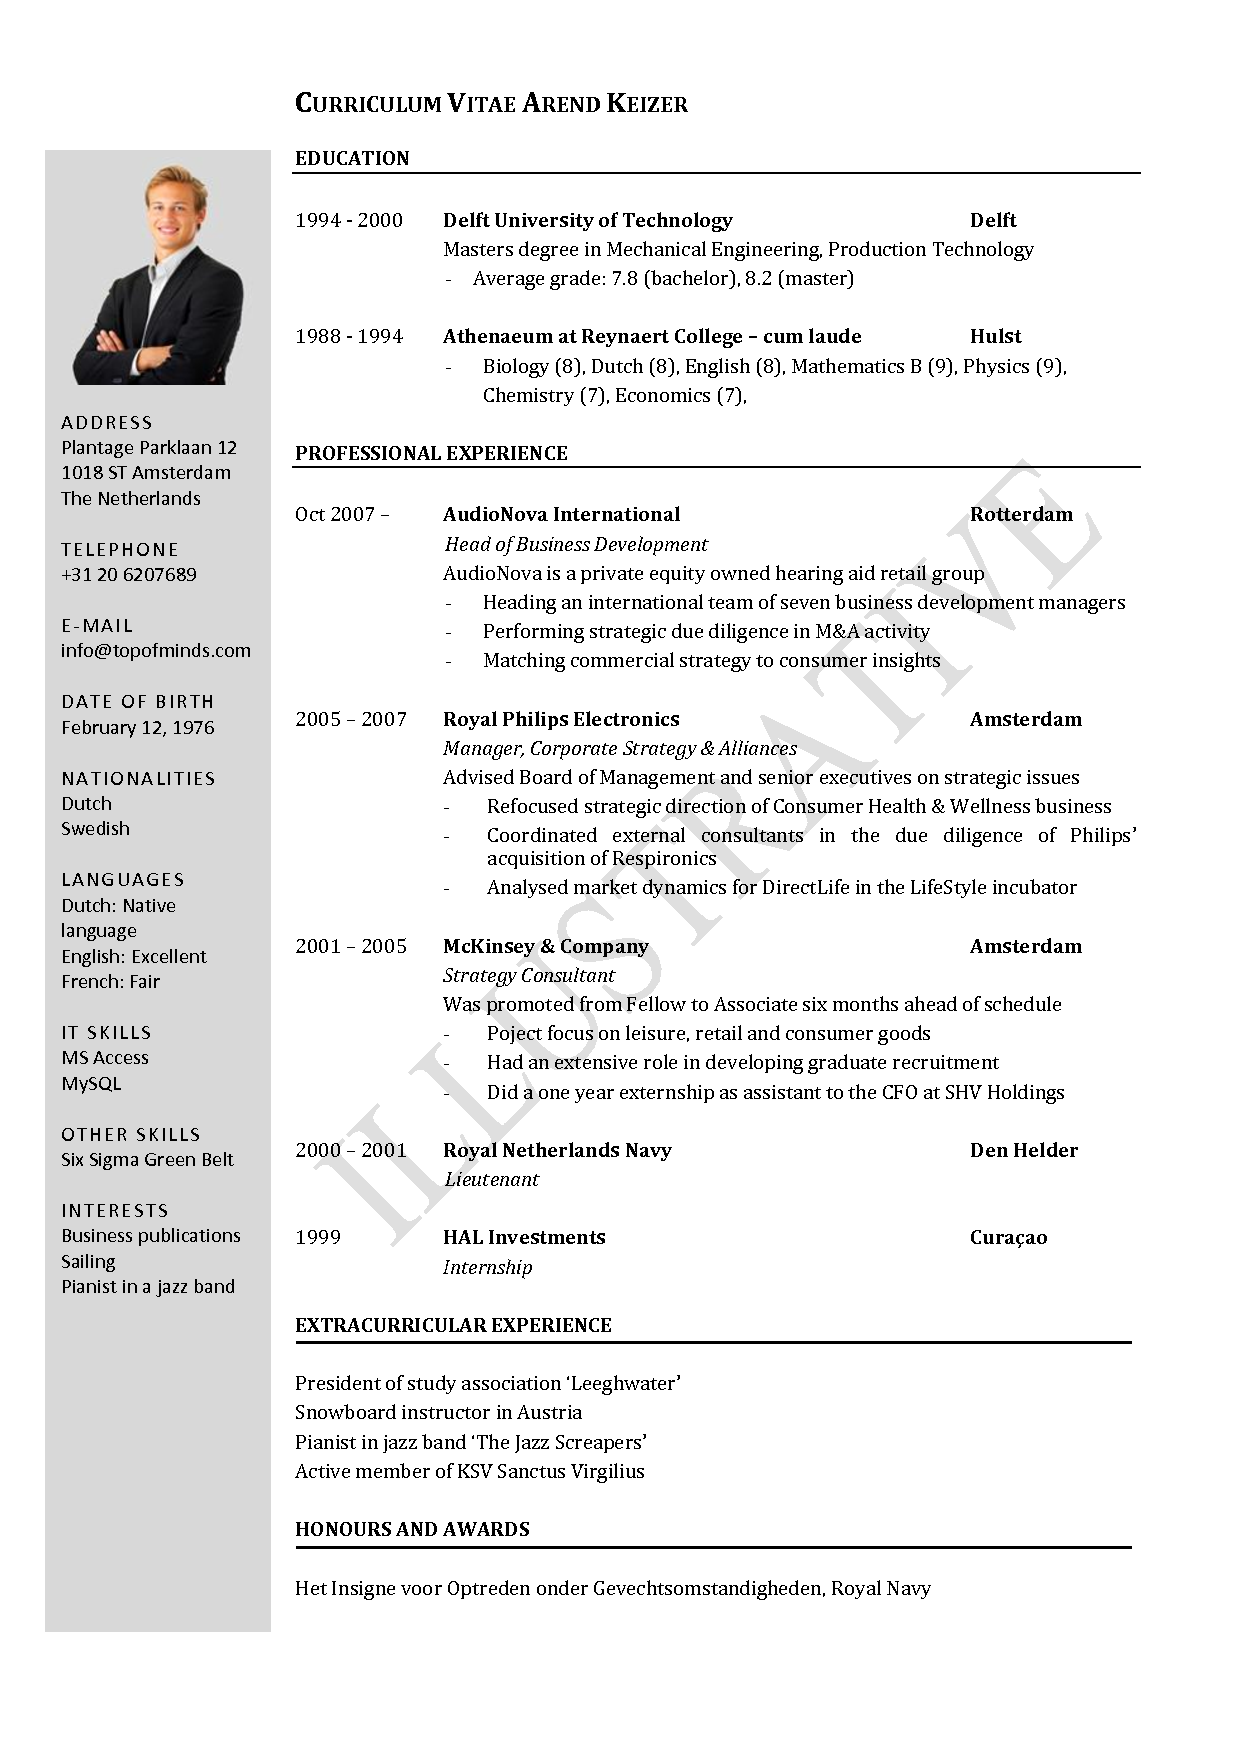 Cv template university student google search cv template cv template university student google search yelopaper Gallery